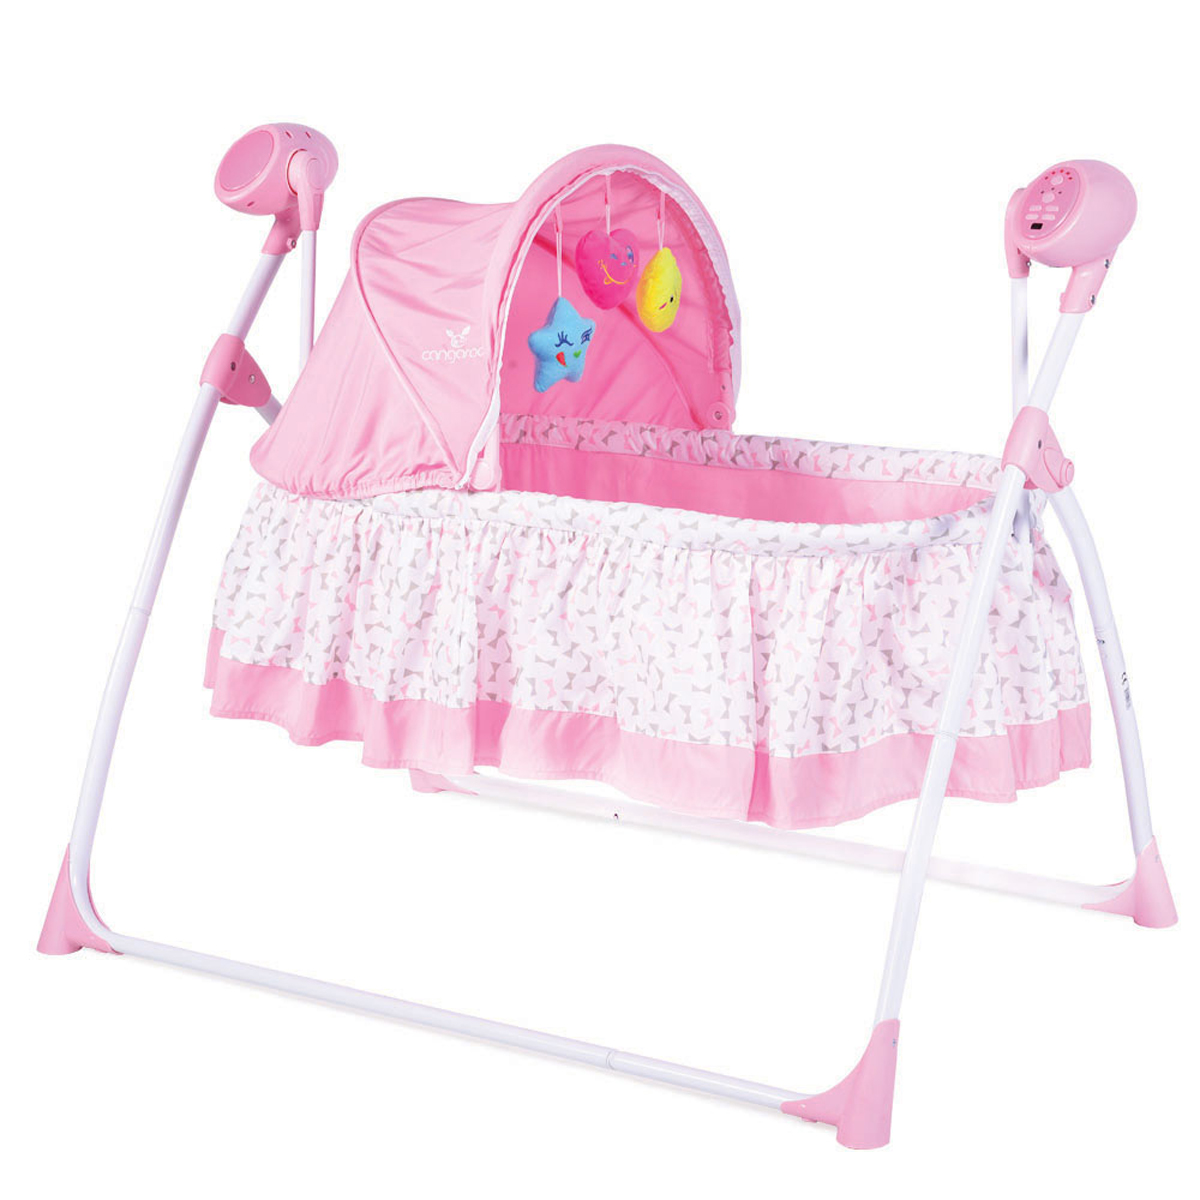 7336ed9d170 Καλαθούνα - Ρηλάξ accent pink cangaroo - Mommys Baby